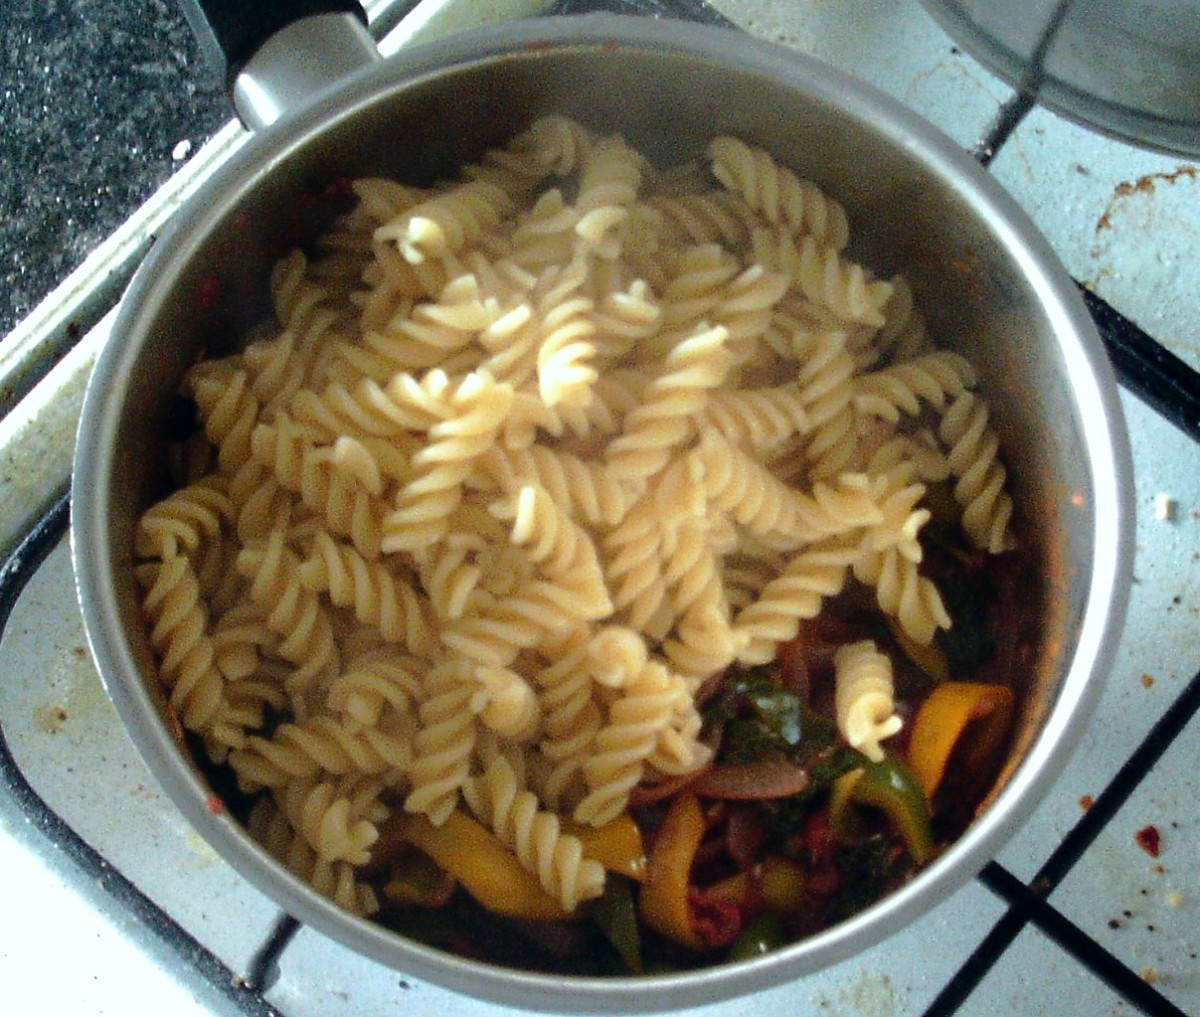 Cooked and drained pasta is added to sauce